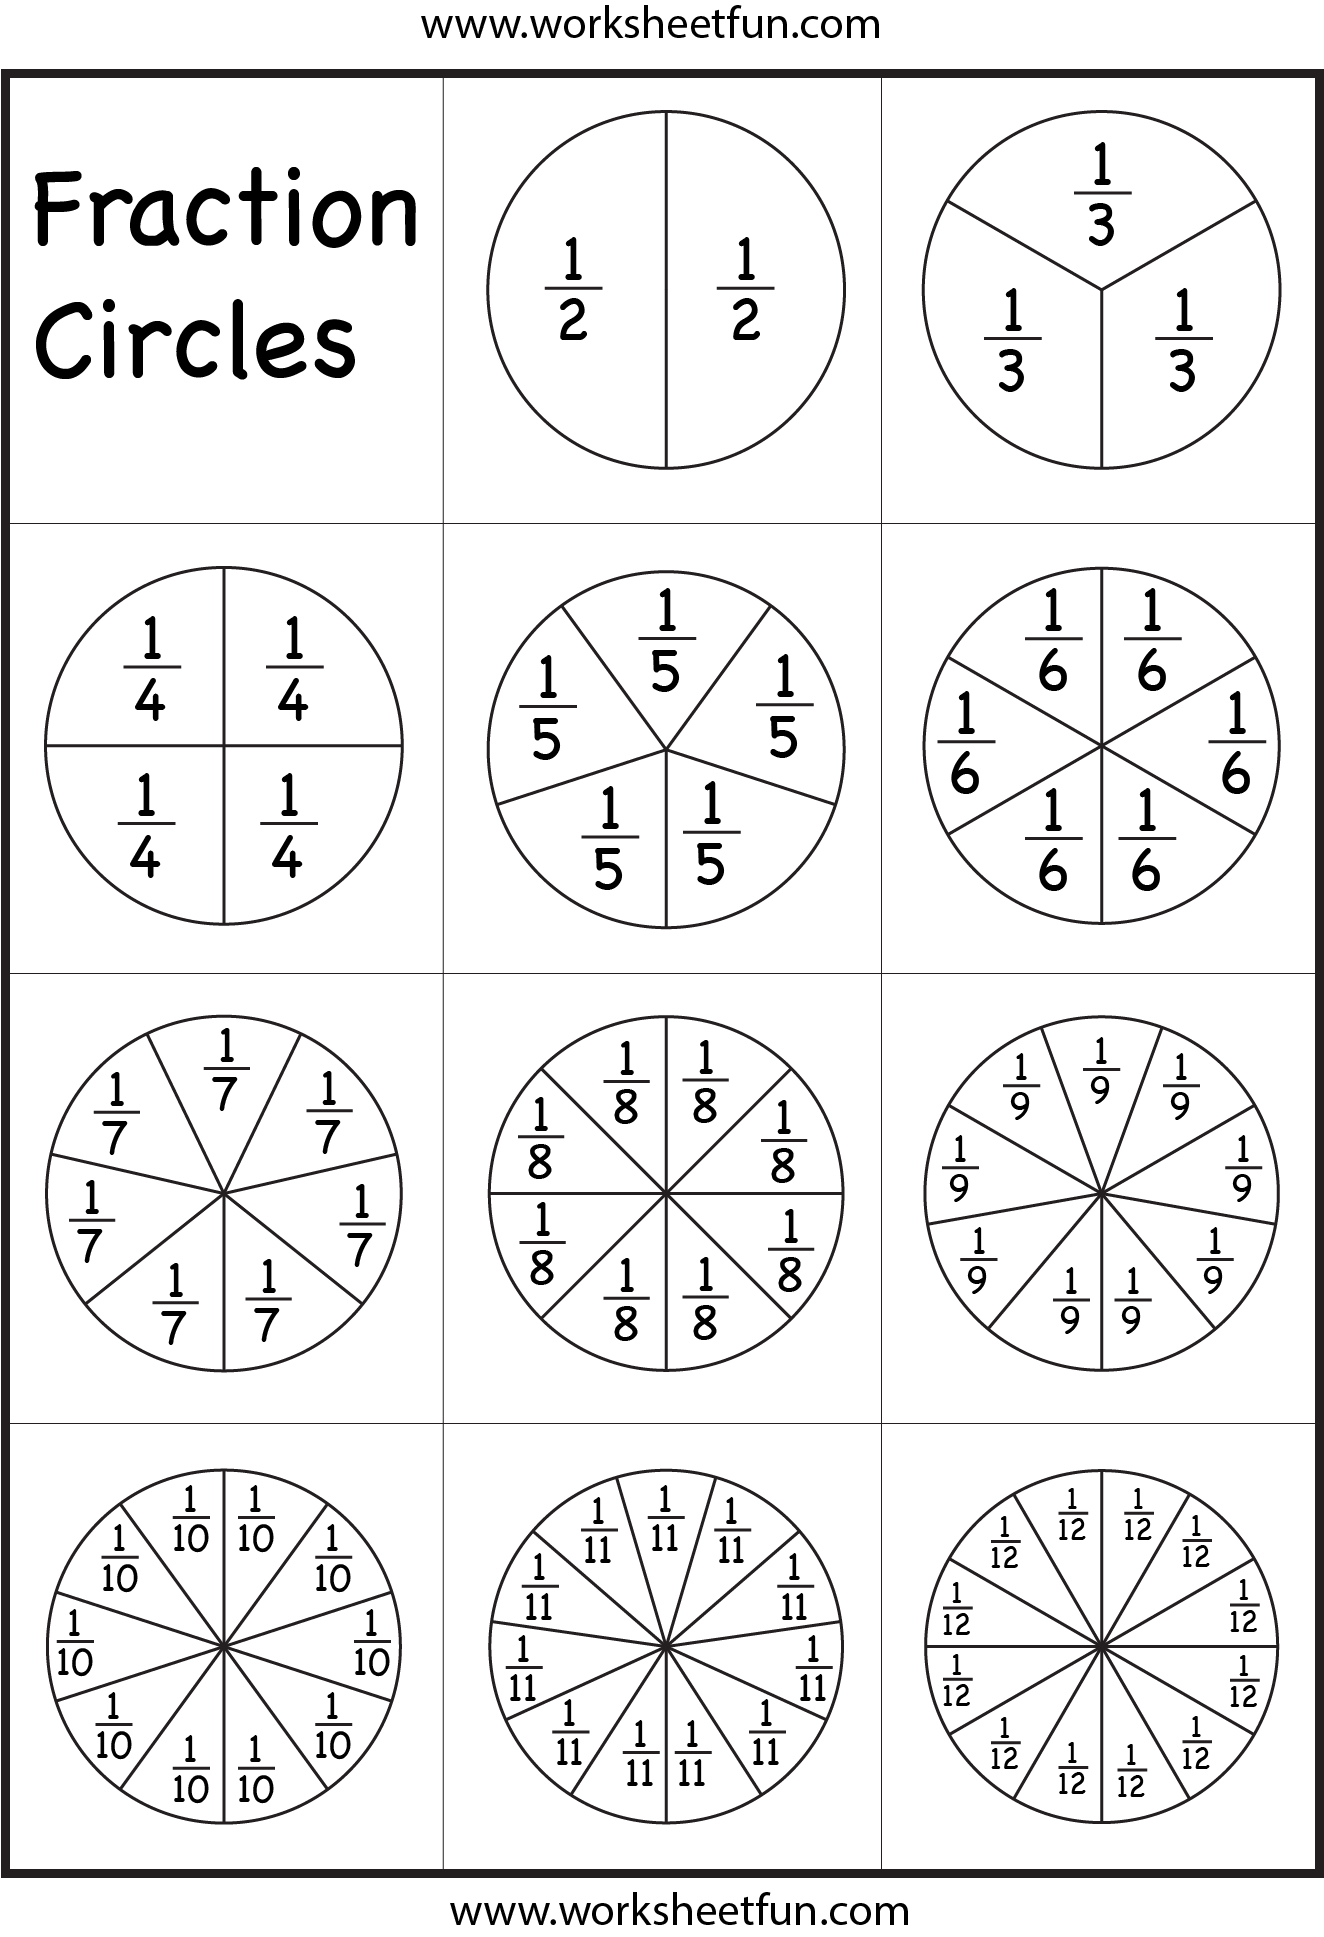 Fraction Circles Worksheet Free Printable Worksheets Worksheetfun